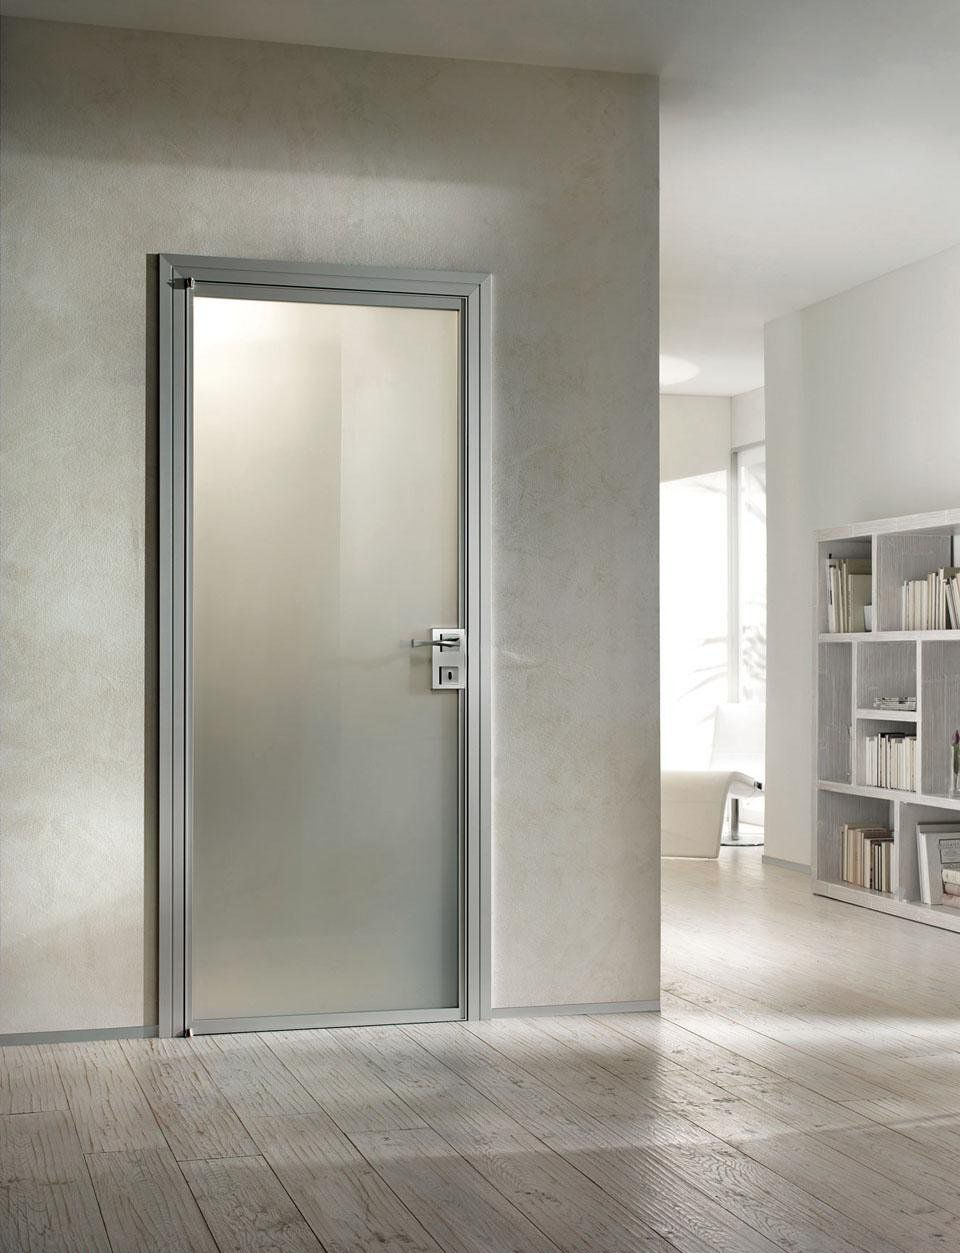 ... Modern Home Design With Thin Aluminium Interior Door With Glass ...